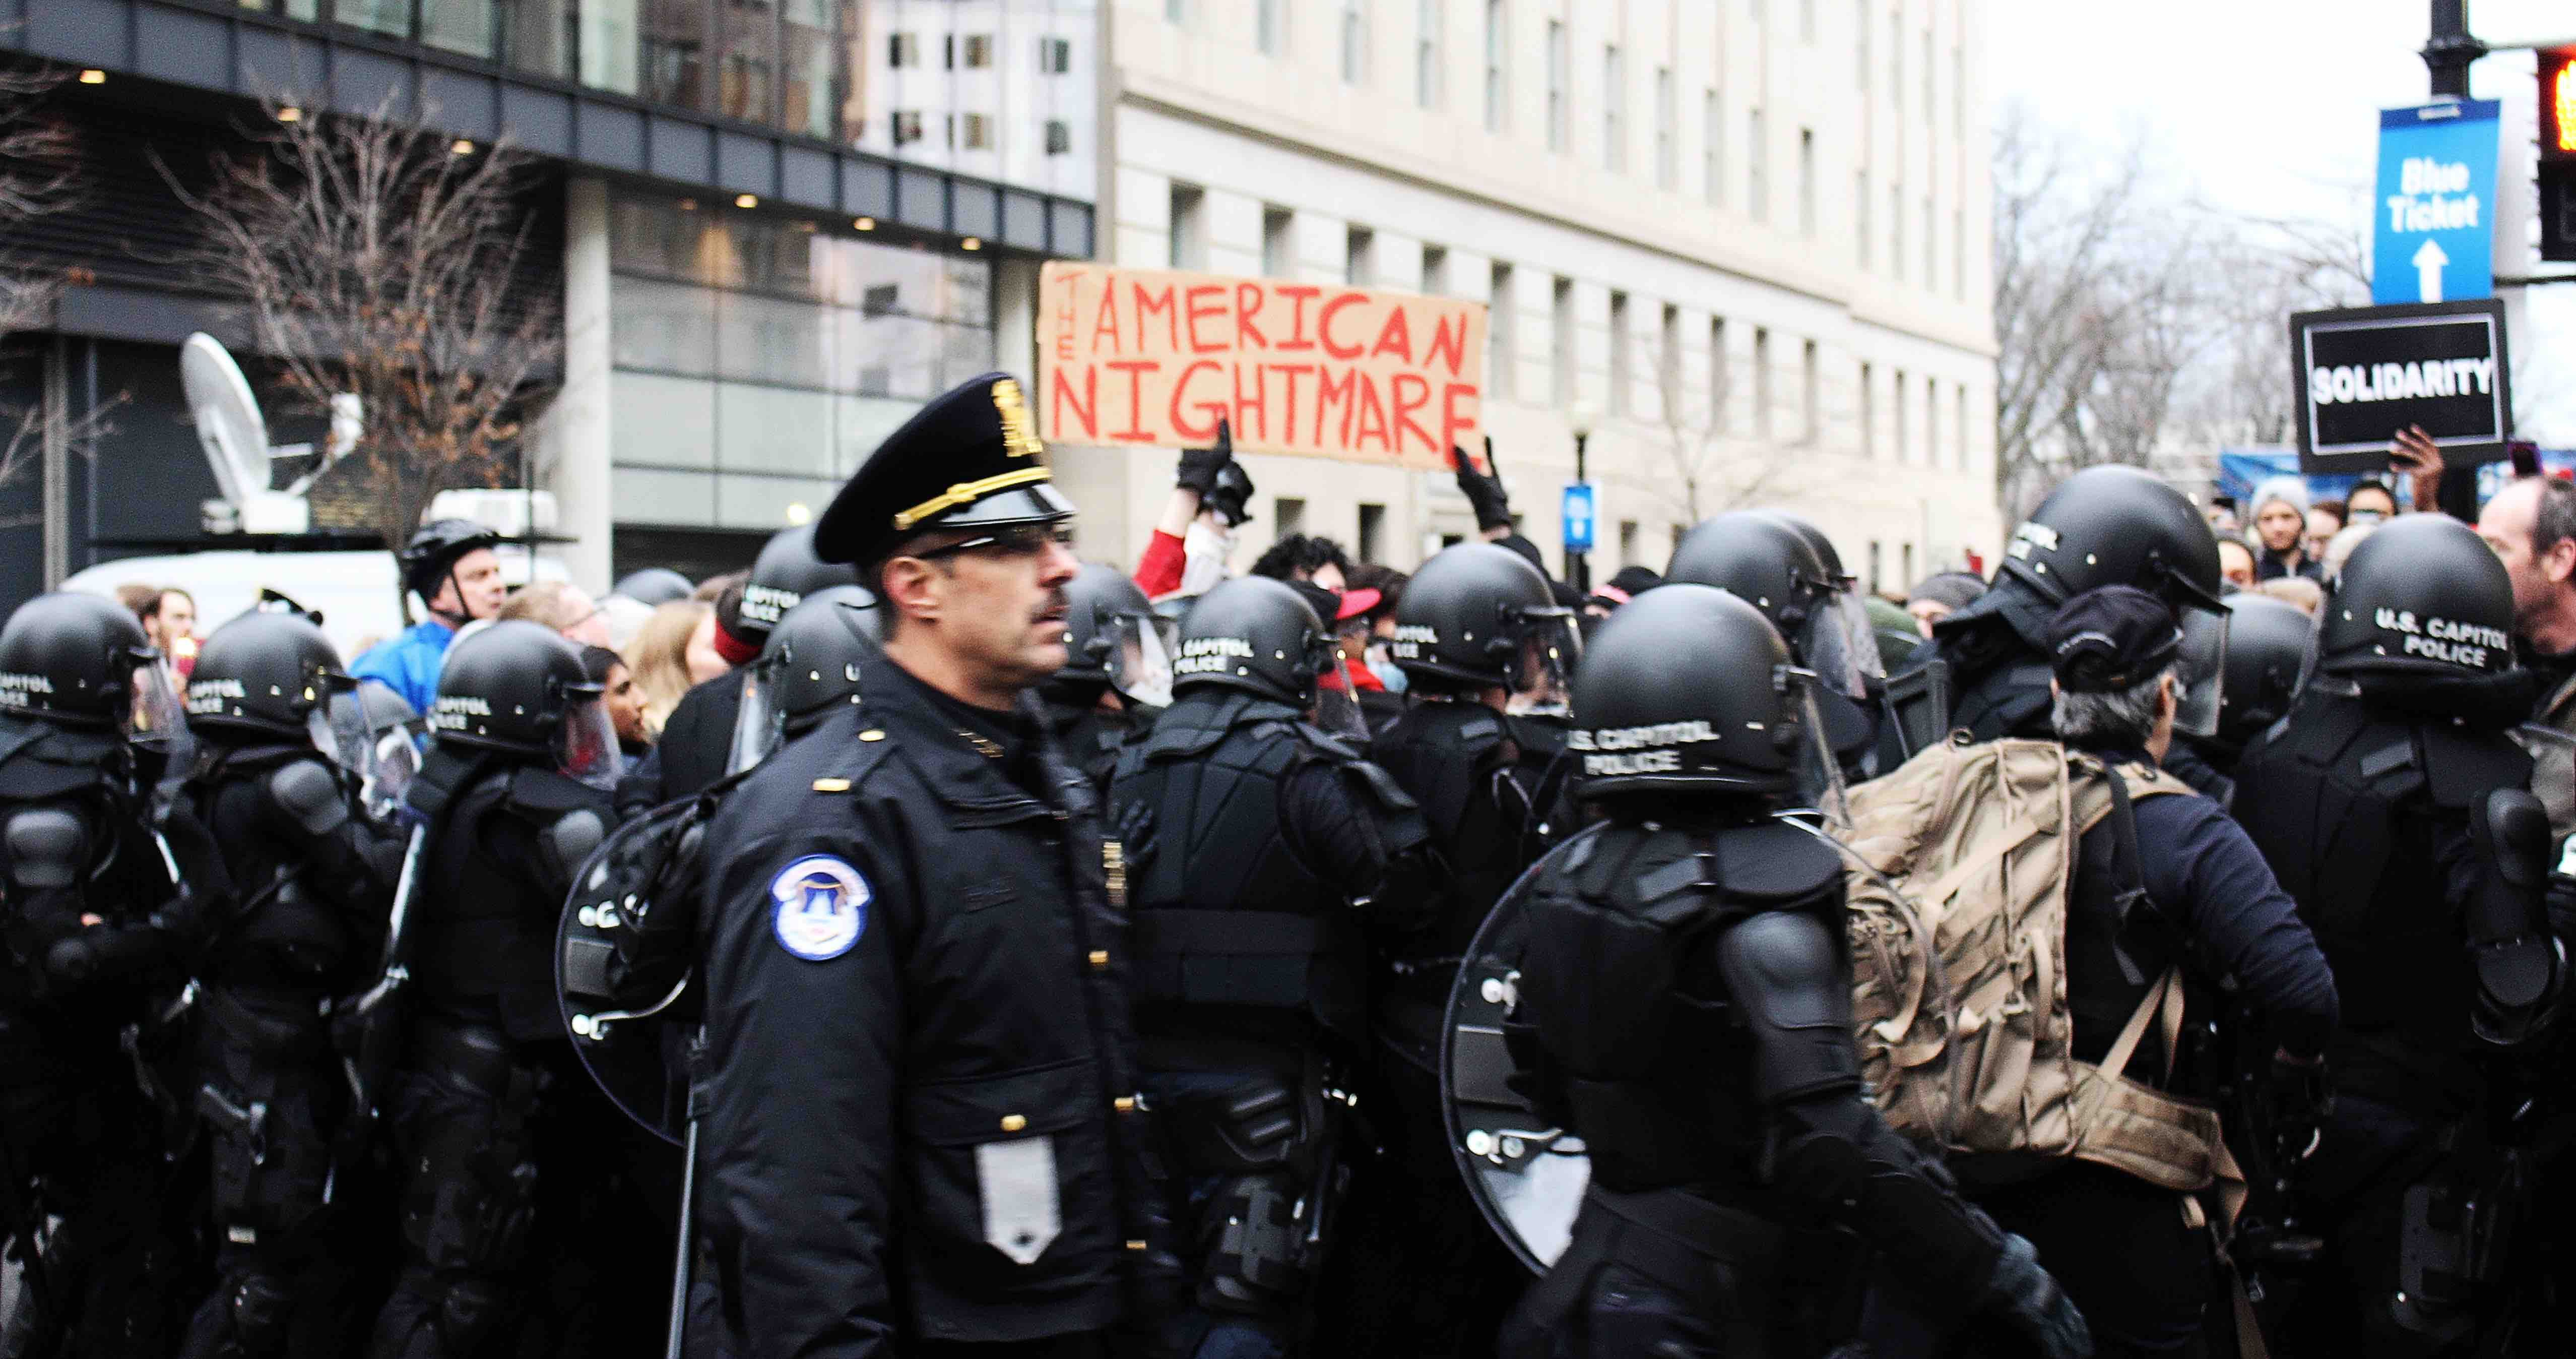 images from Trump inauguration in DC